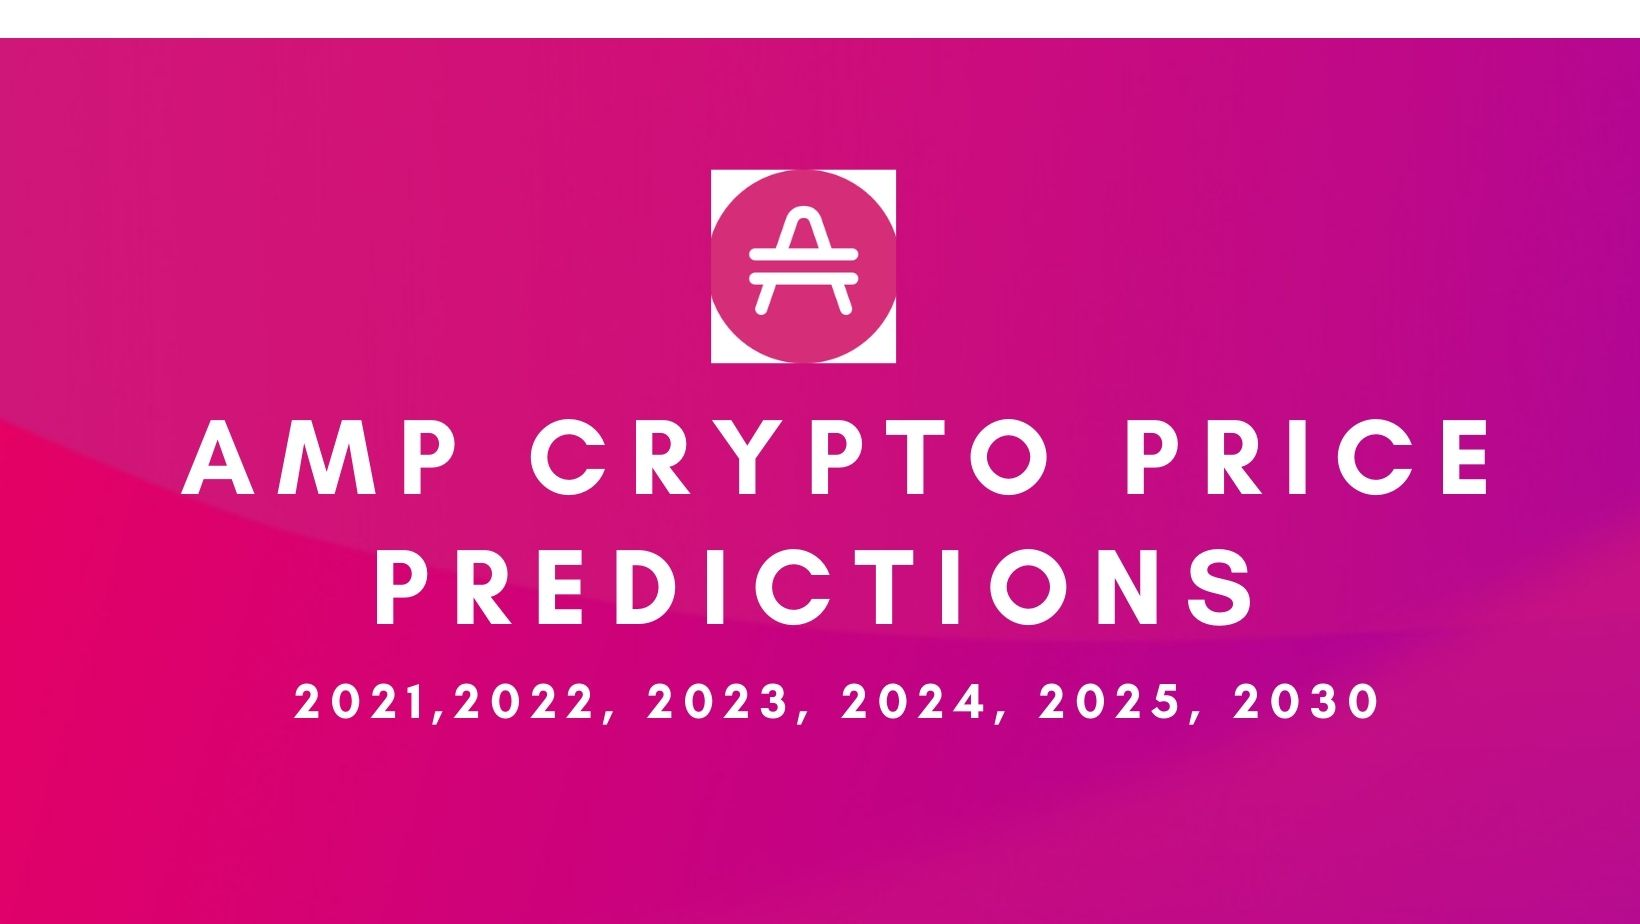 amp cryptocurrency price prediction